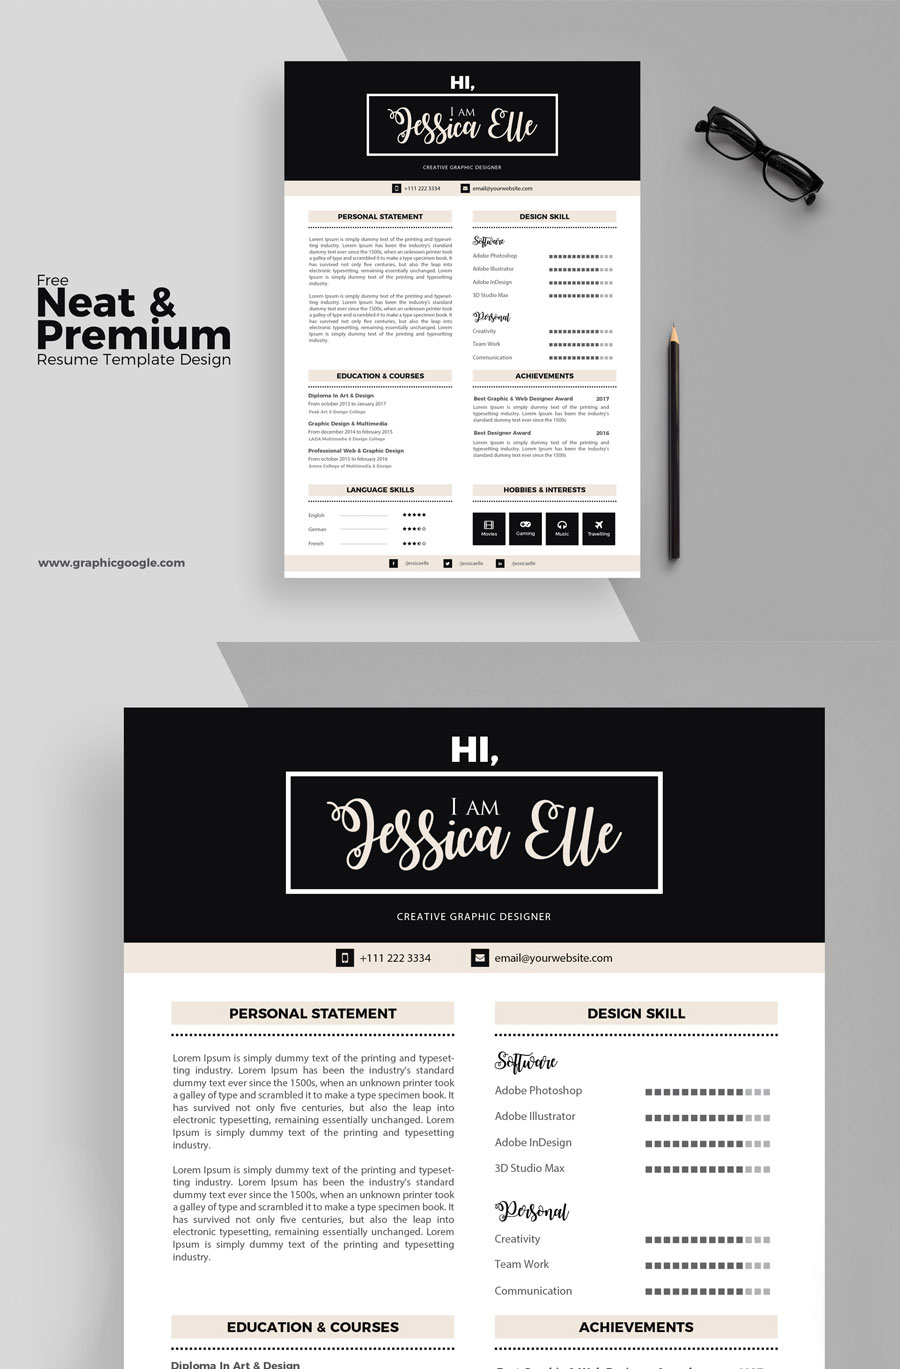 Free-Simple-&-Elegant-Free-Resume-Design-Template